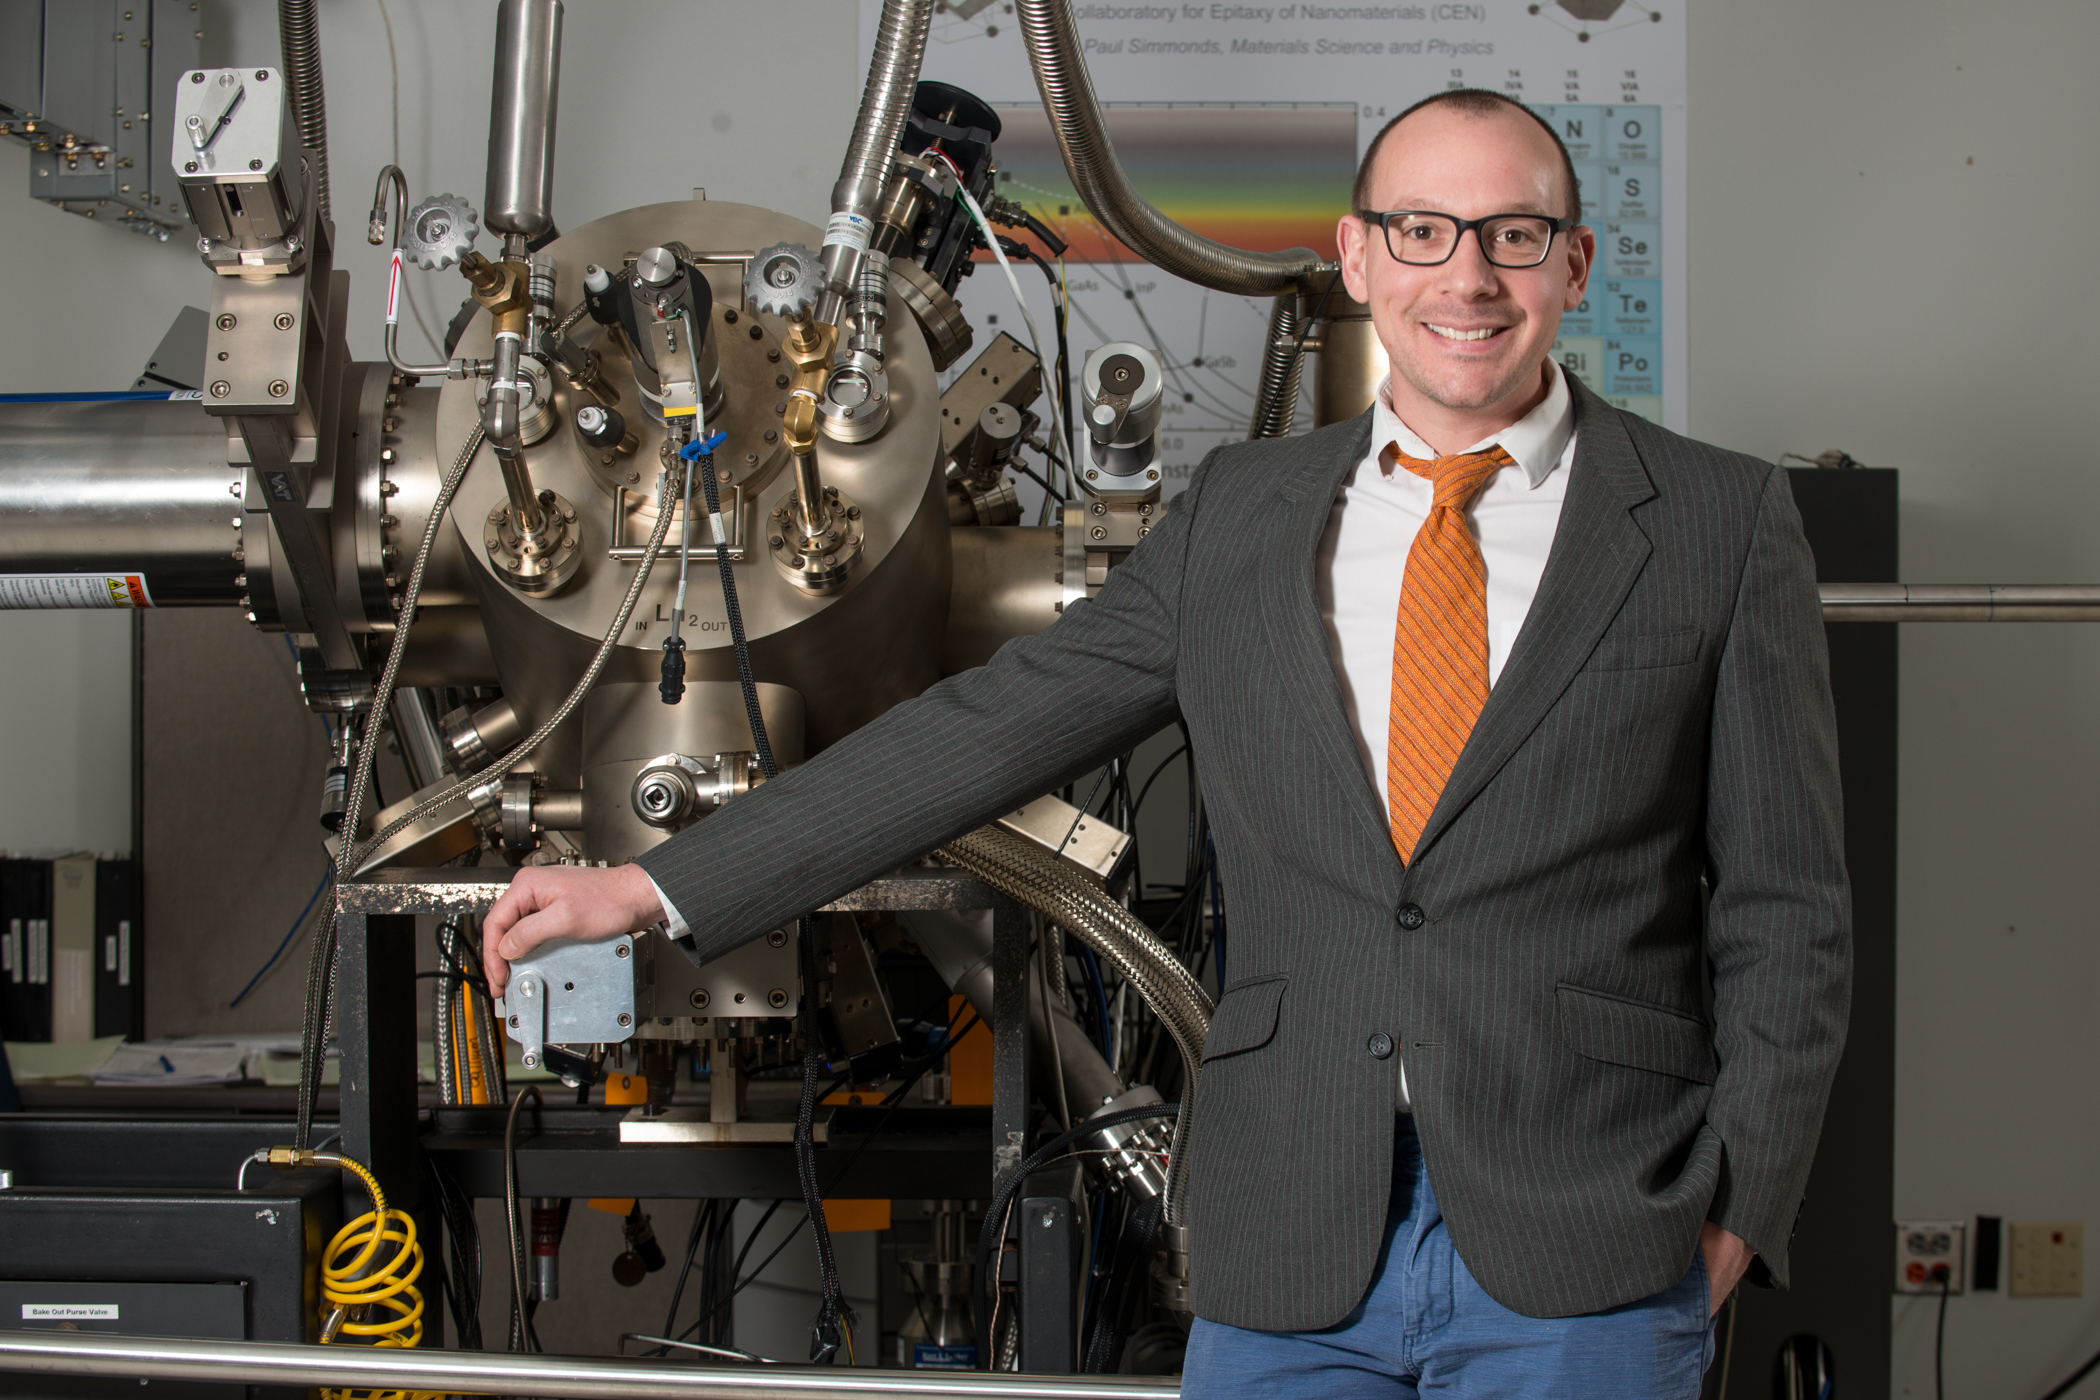 Boise State researcher dives into the quantum well to solve mystery - Boise State News